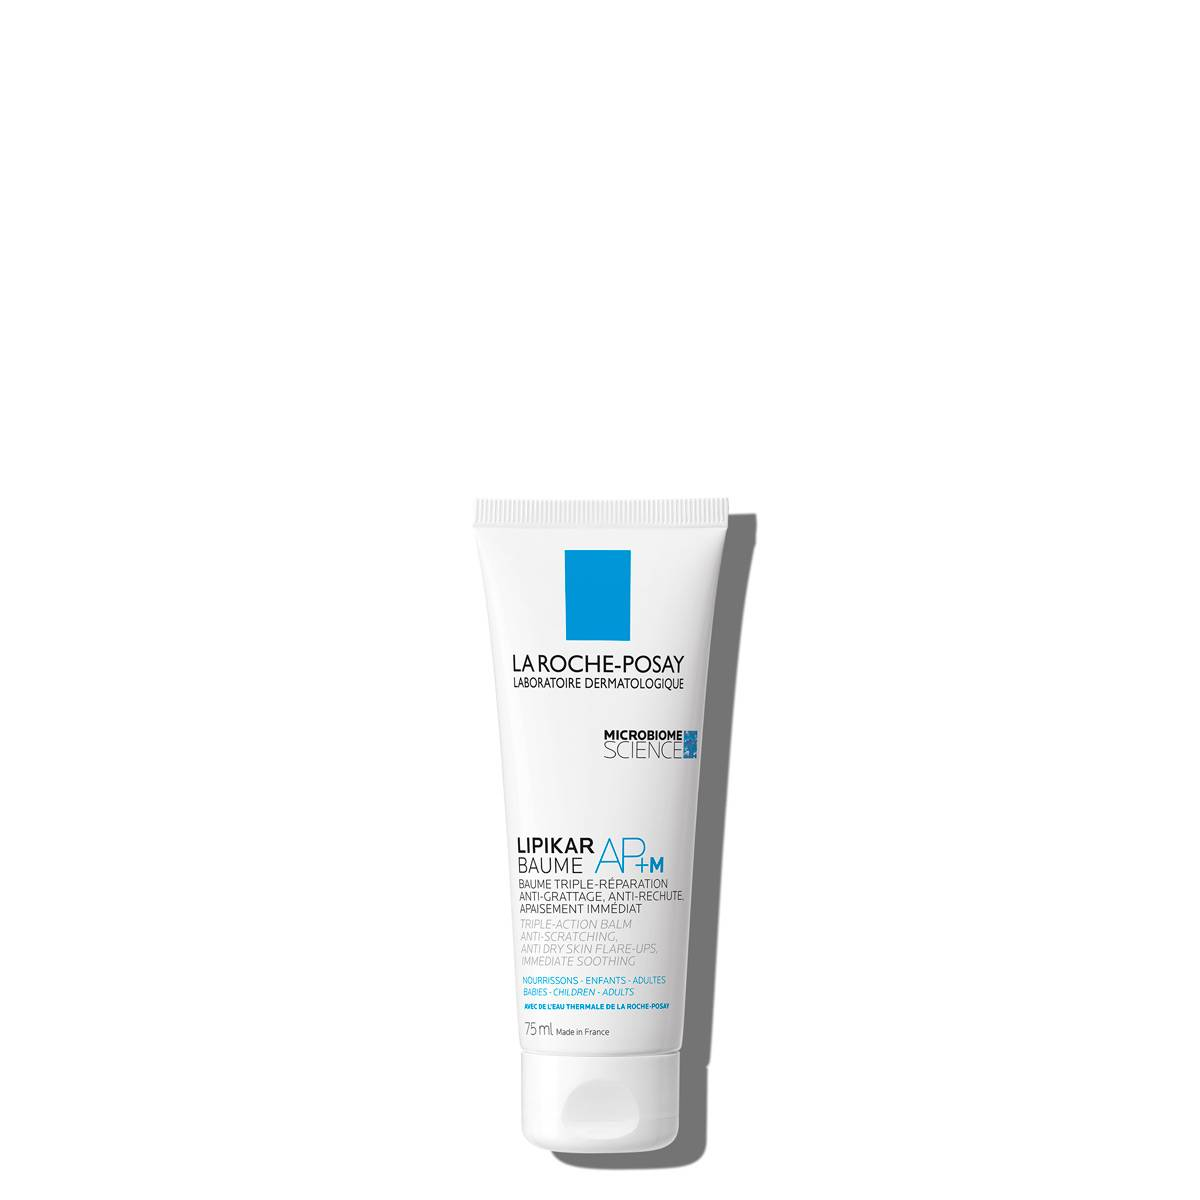 La Roche Posay Body Care Lipikar Baume APM 75ml Lipid Replenishing Balm AntiIrritation Scratching 0003337872421037